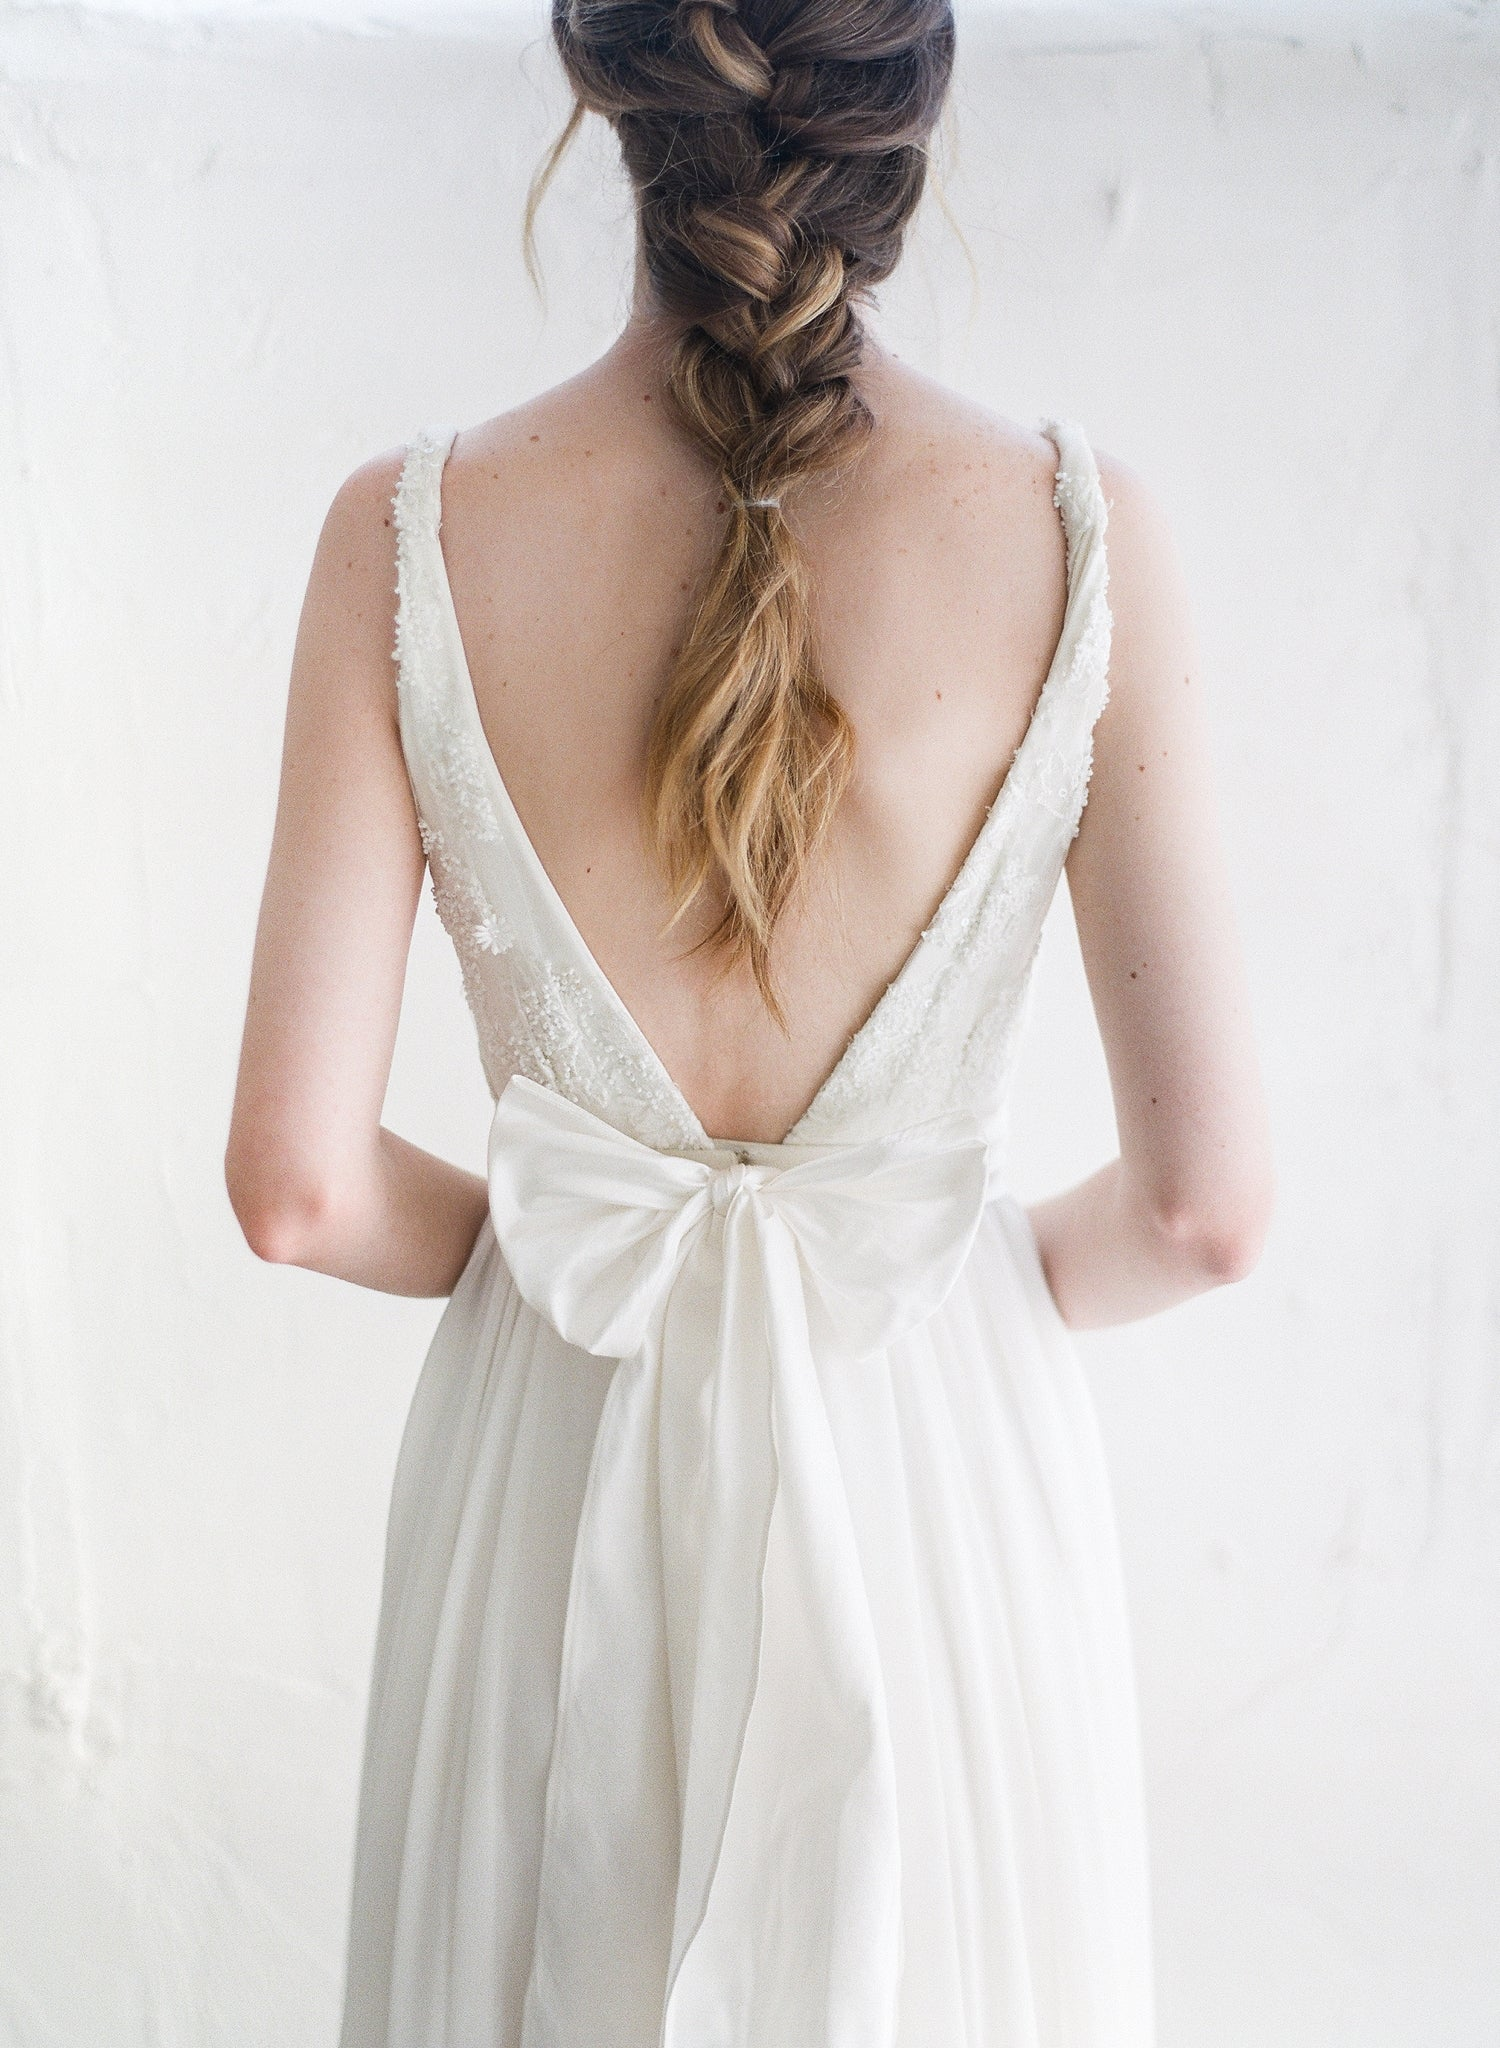 off-white silk sash for wedding dress